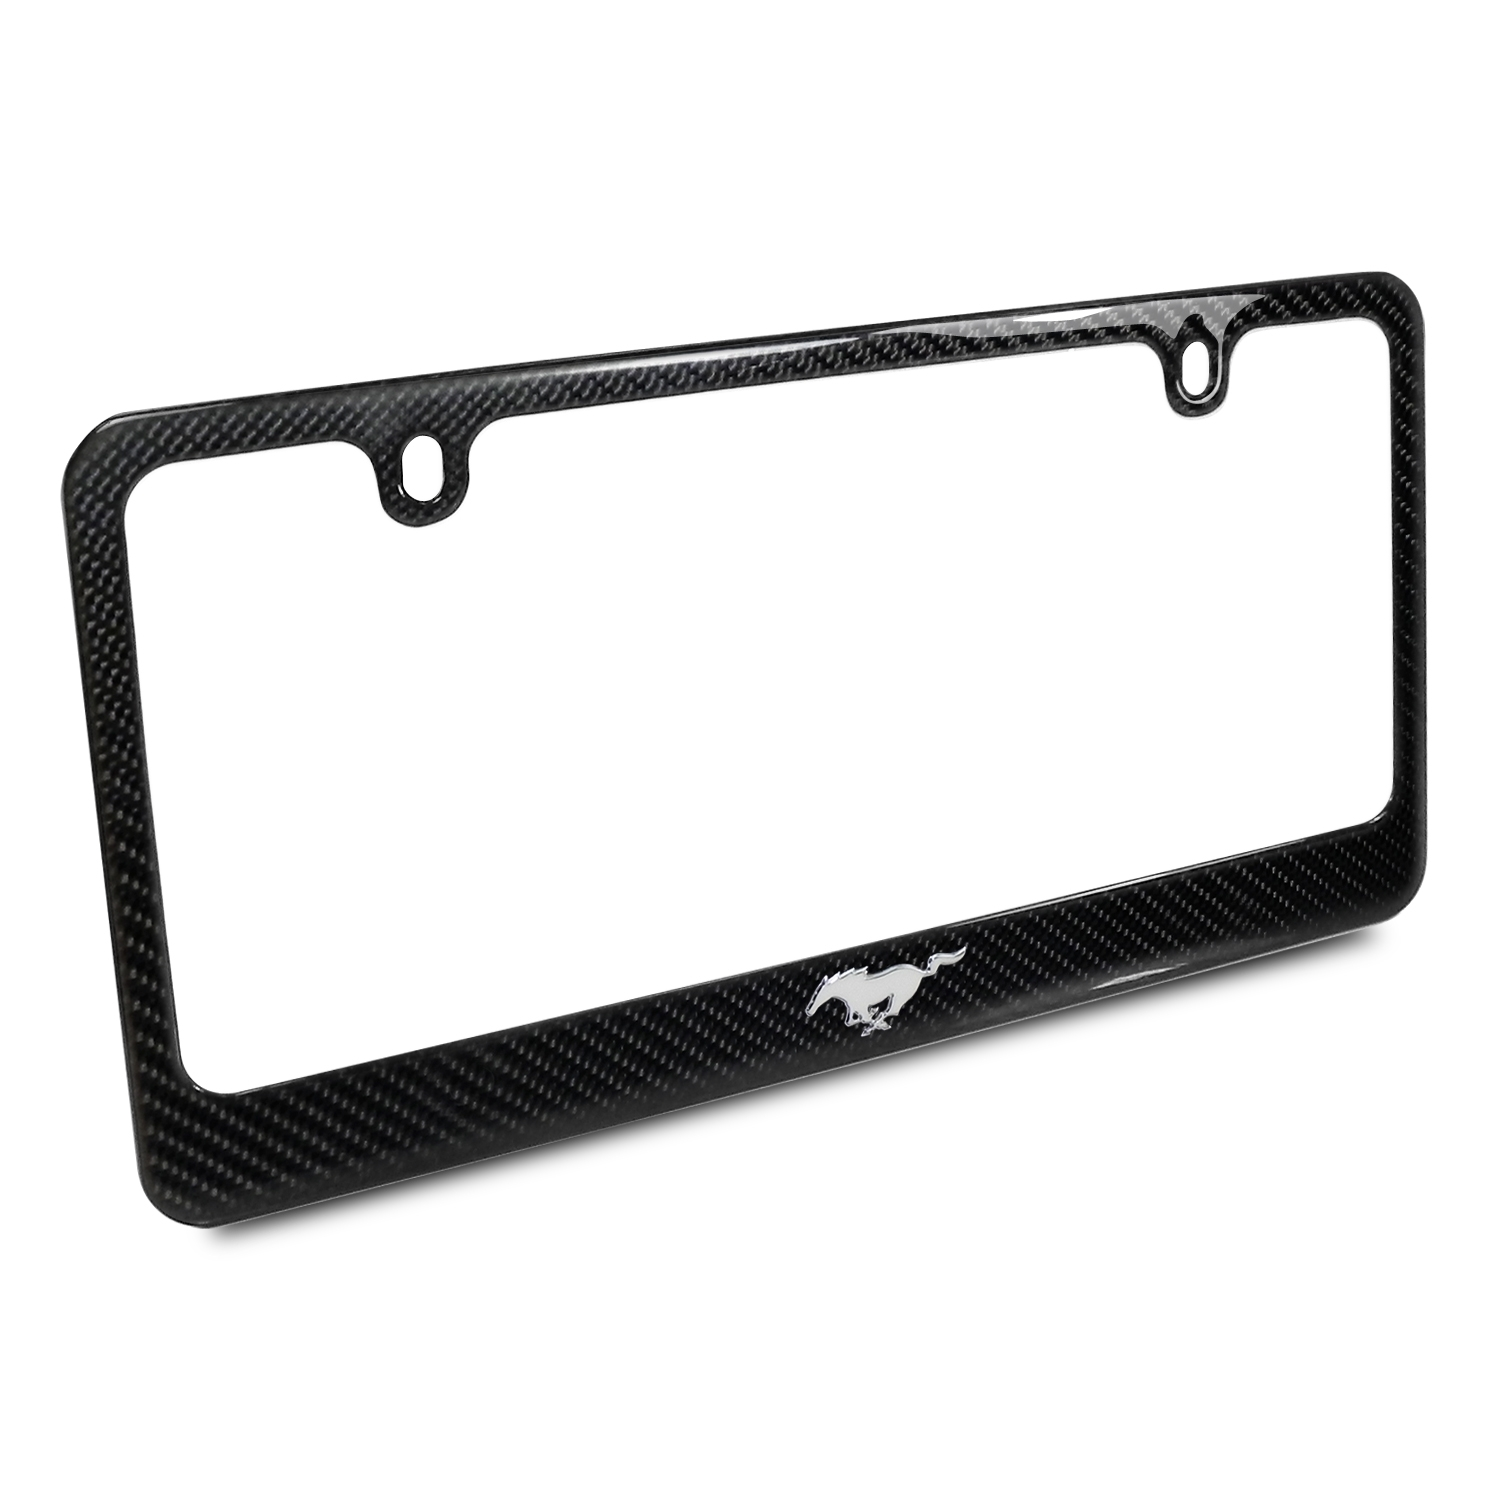 Ford Mustang Pony 3d Chrome Emblem Black Carbon Fiber License Plate Frame